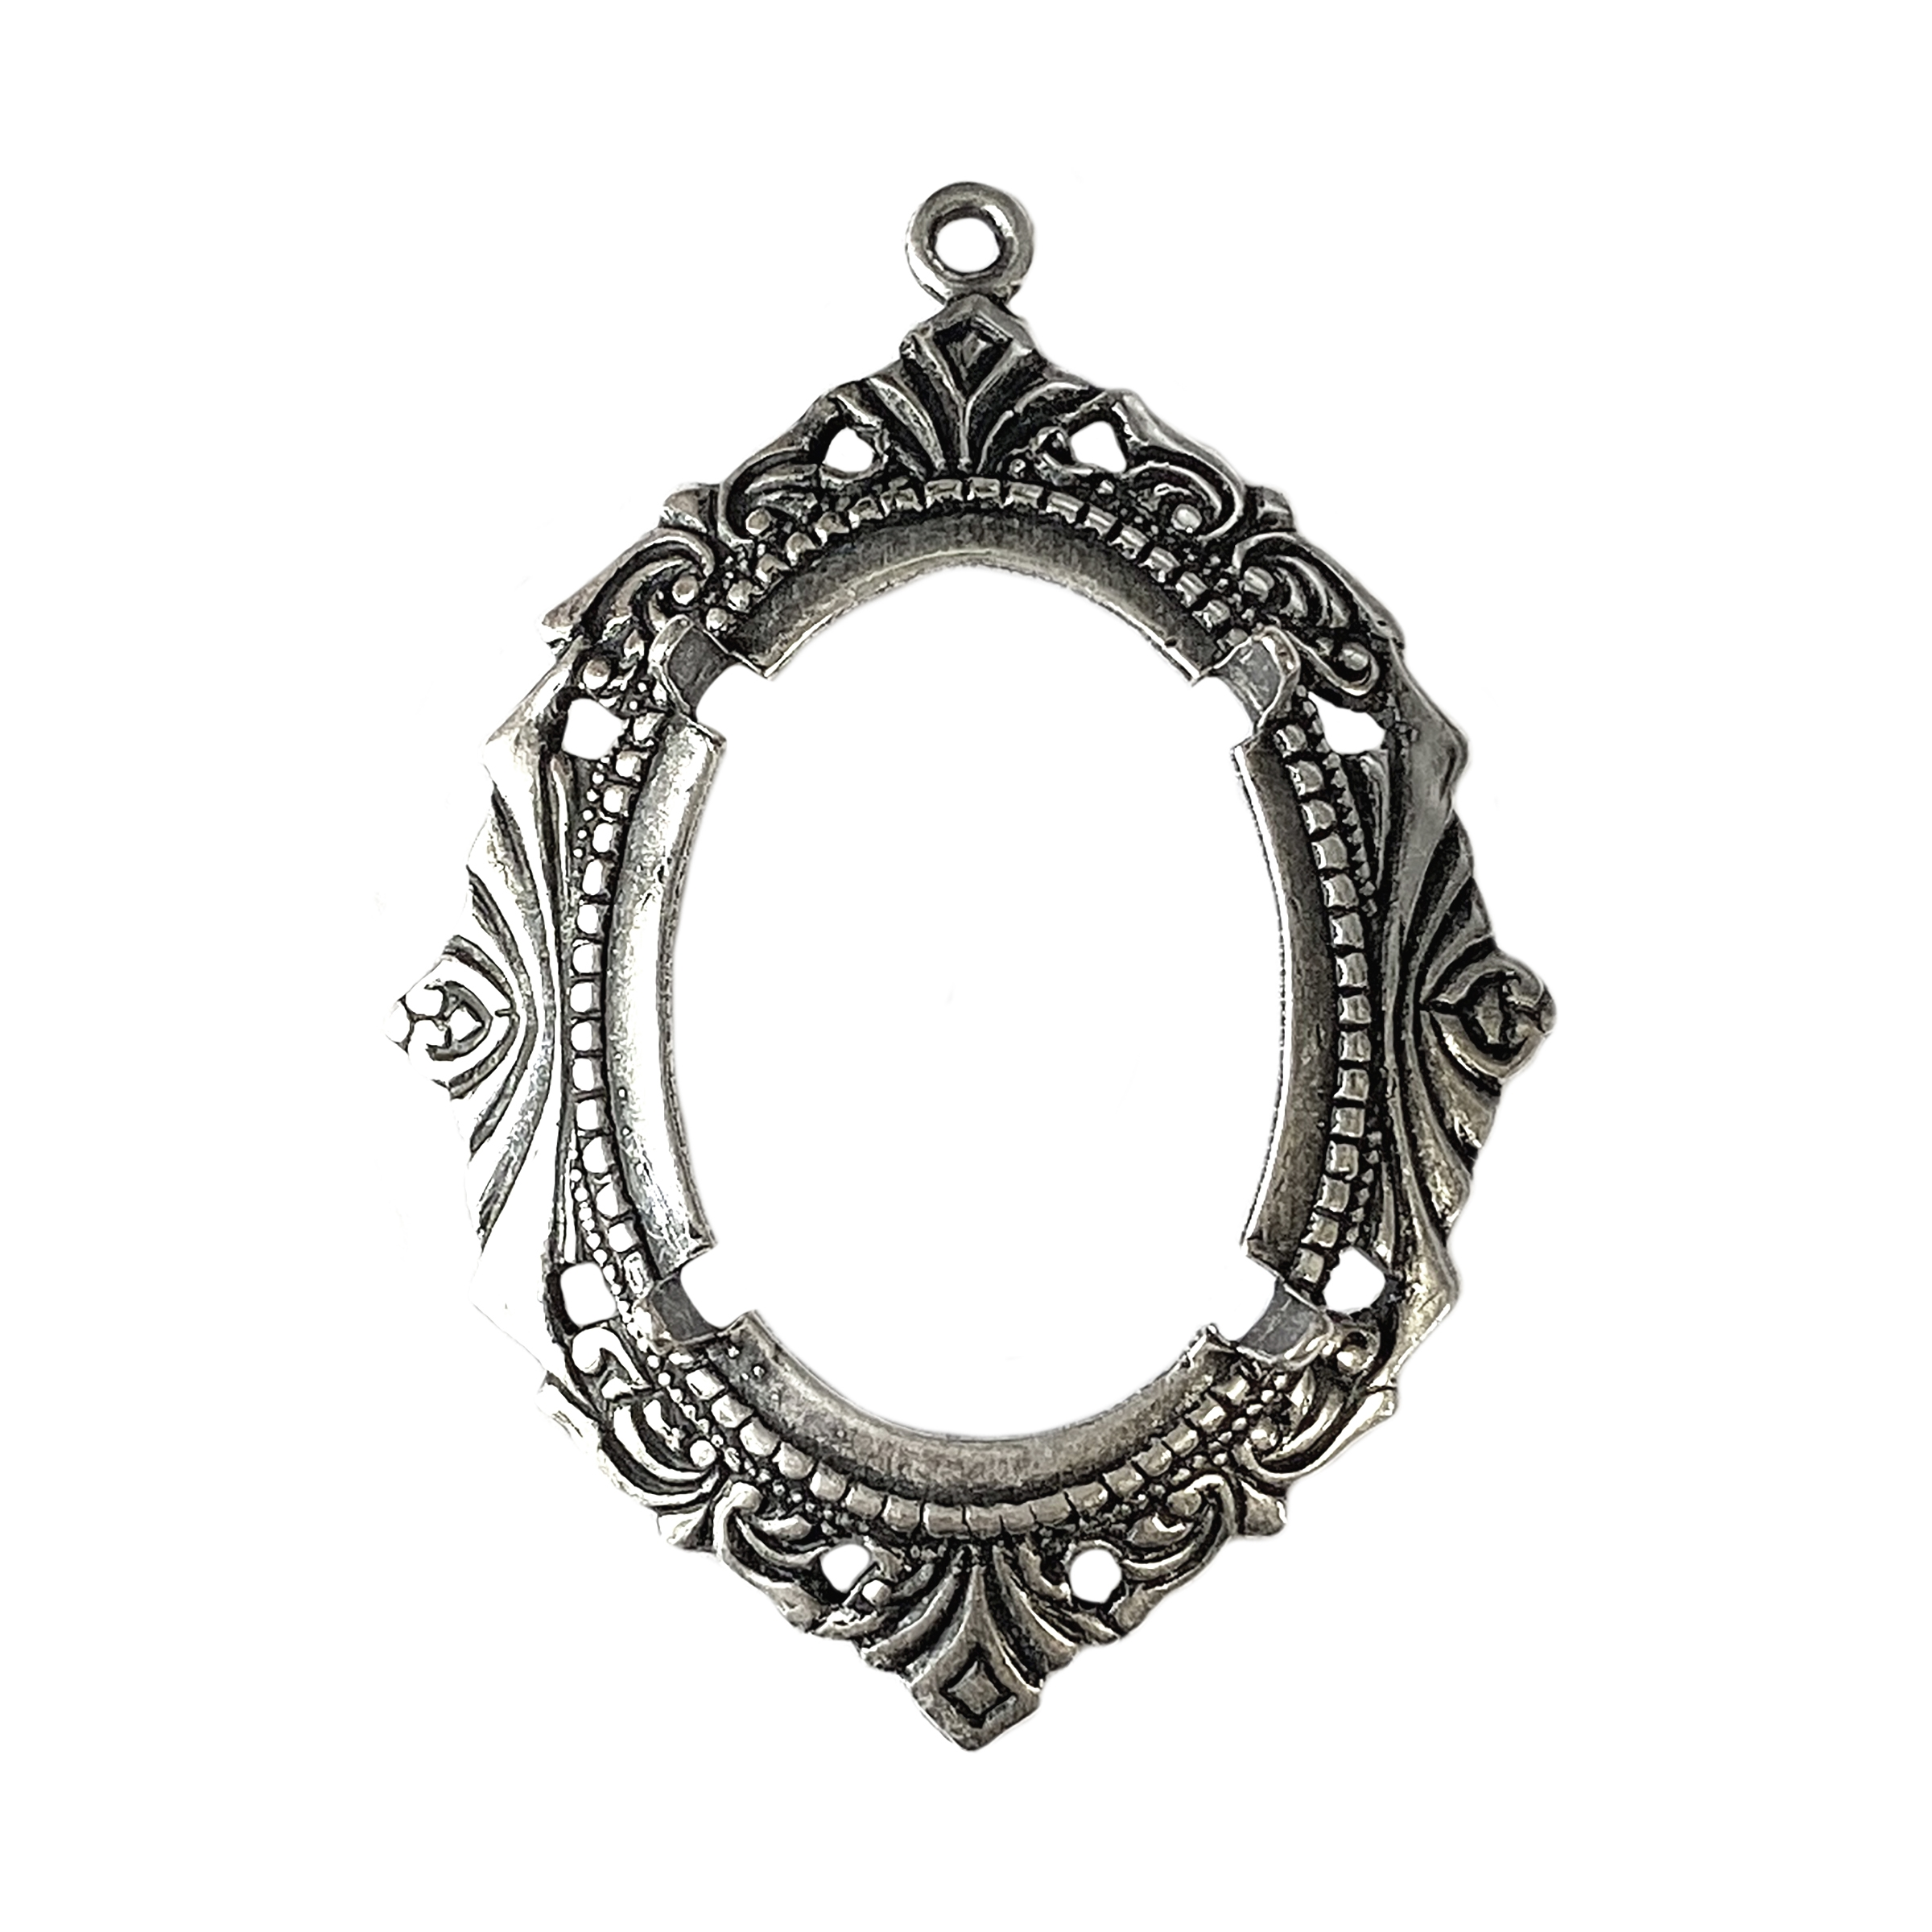 backless Victorian jewelry mount, silverware silverplate, mount, pendant, backless mount, pendant mount, antique silver, jewelry mount, floral design, floral border mount, 25x18mm mount, jewelry making, jewelry supplies, stamping, B'sue, bezel, 01652